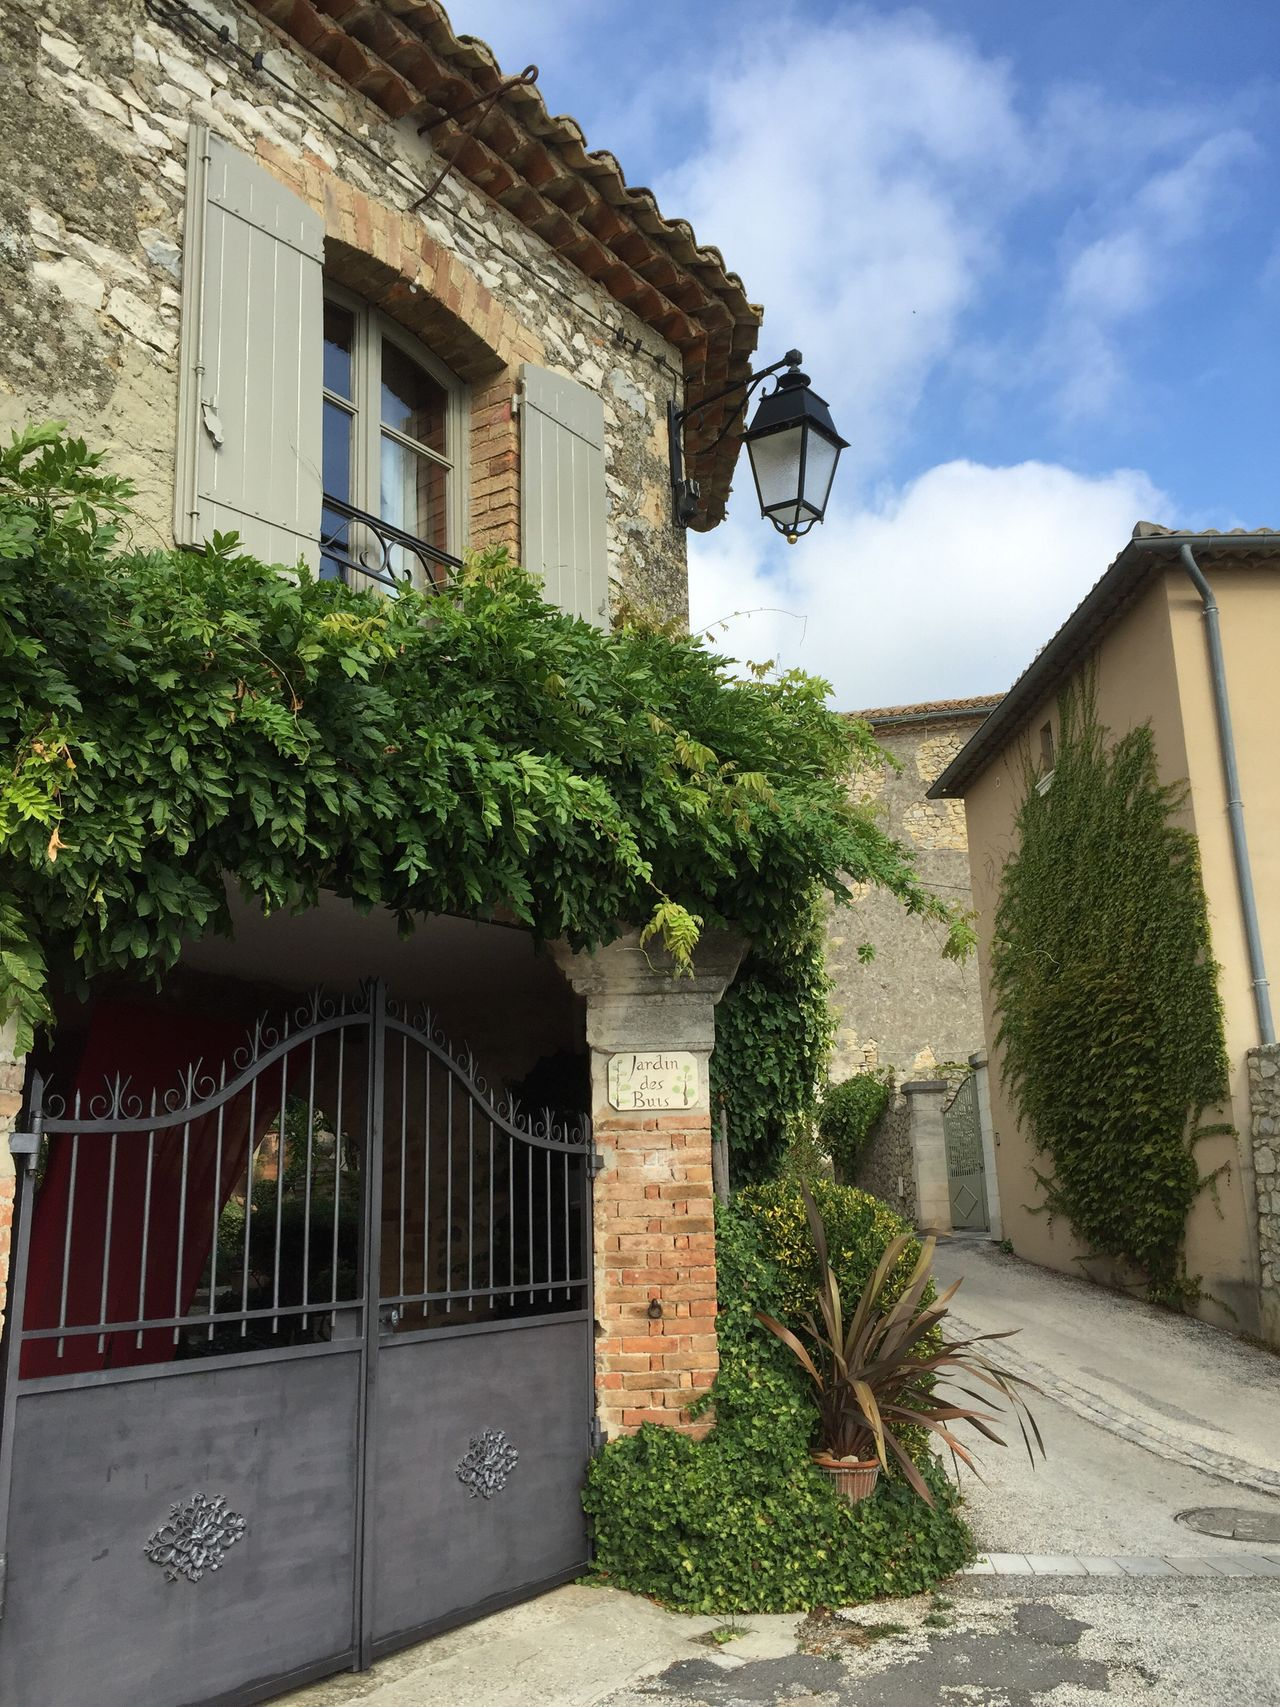 France Occitanie Gard Lussan Village Village Life Enjoying Life Building Exterior Tree Architecture Built Structure Plant Growth House Sky No People Balcony Residential Building Outdoors Day Nature